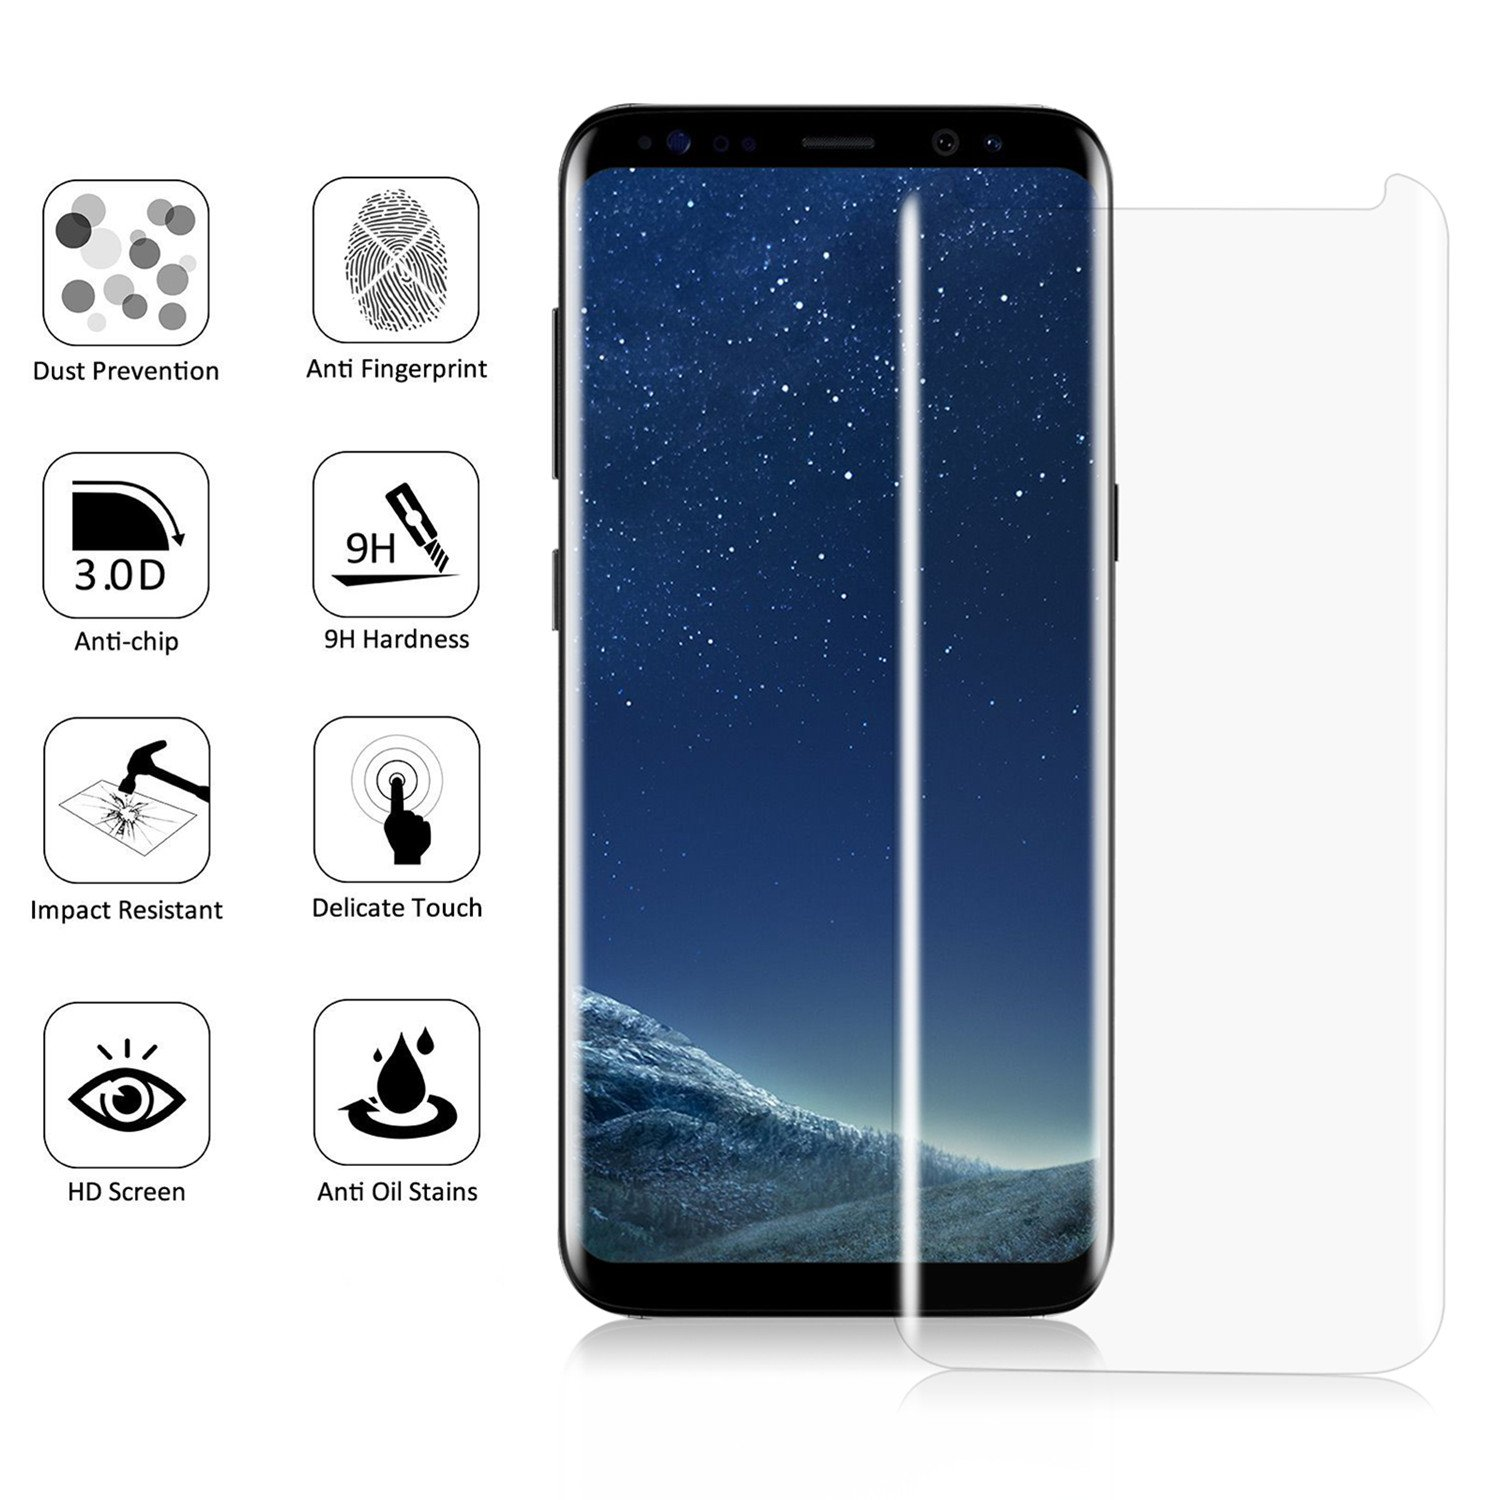 Samsung Galaxy S8 Plus Screen Protector [Full Cover] KUMIHO Tempered Glass Screen Protector For S8 0 25mm Screen Protection Case Fit Touch Accurate with